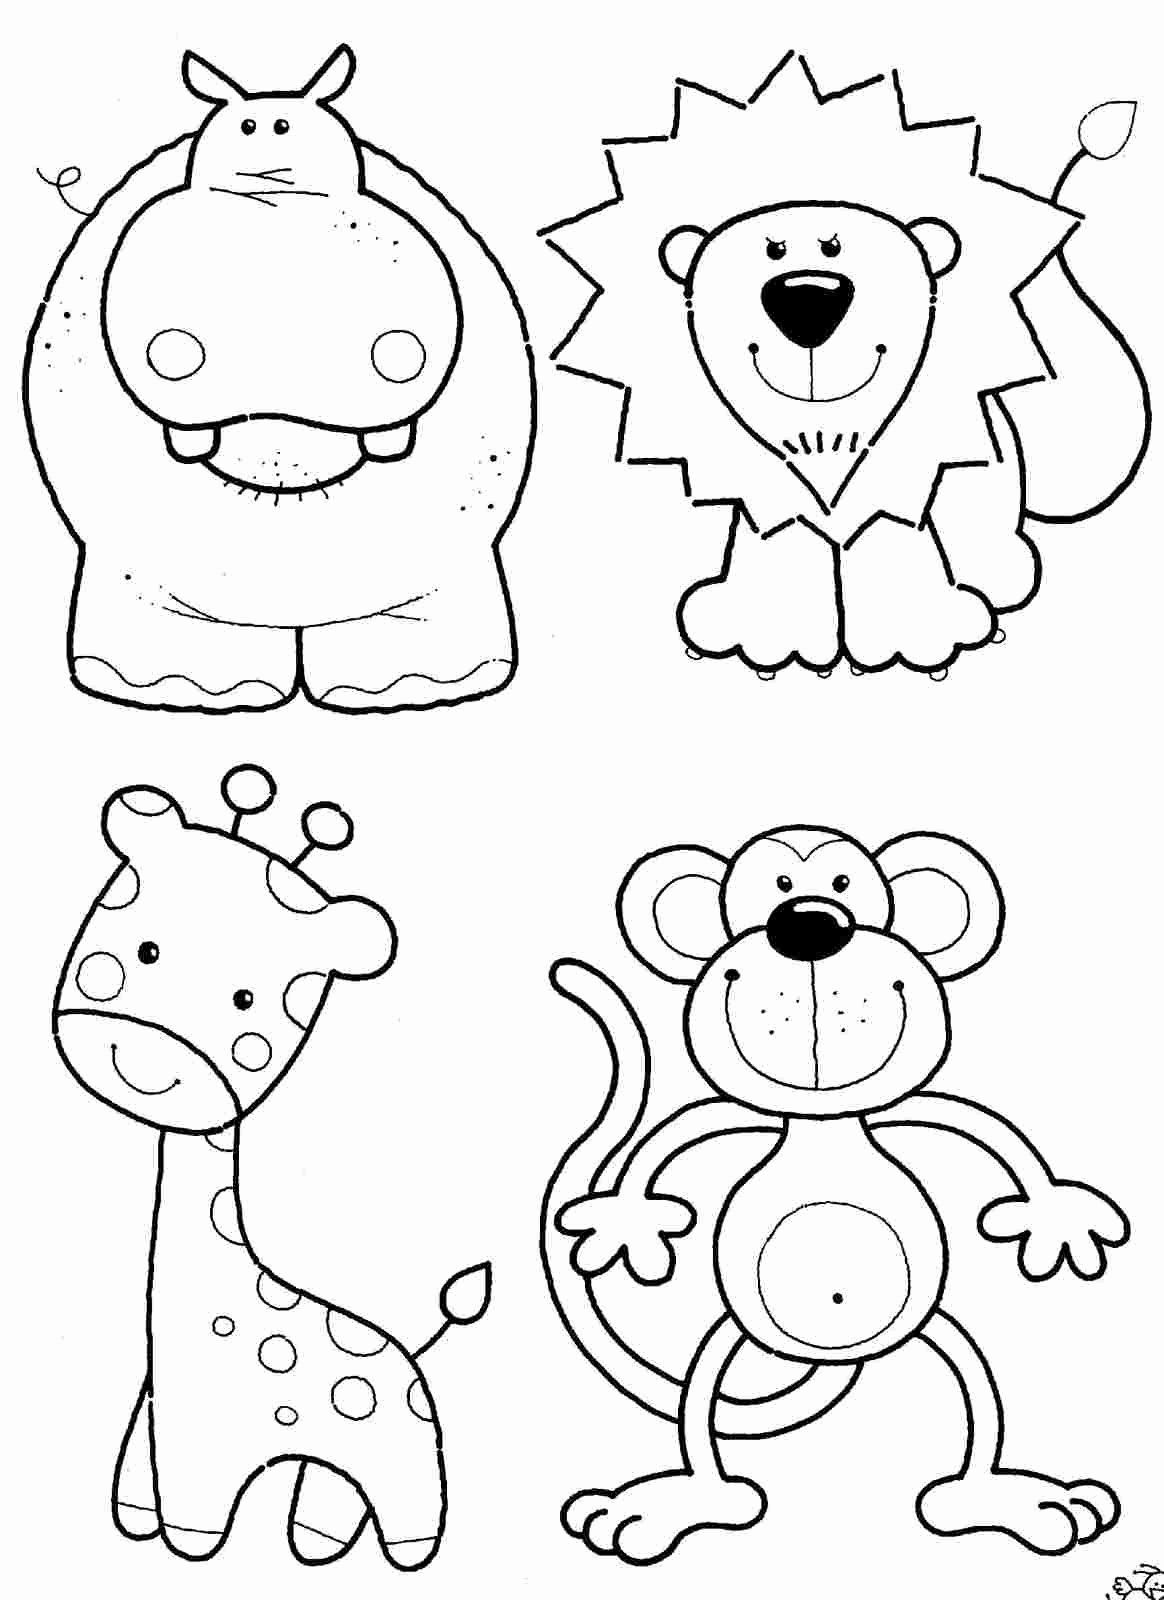 Animal Printable Coloring Pages Fresh Coloring Pages Of Animals To Print For Free African Zoo Coloring Pages Coloring Pictures Of Animals Animal Coloring Books